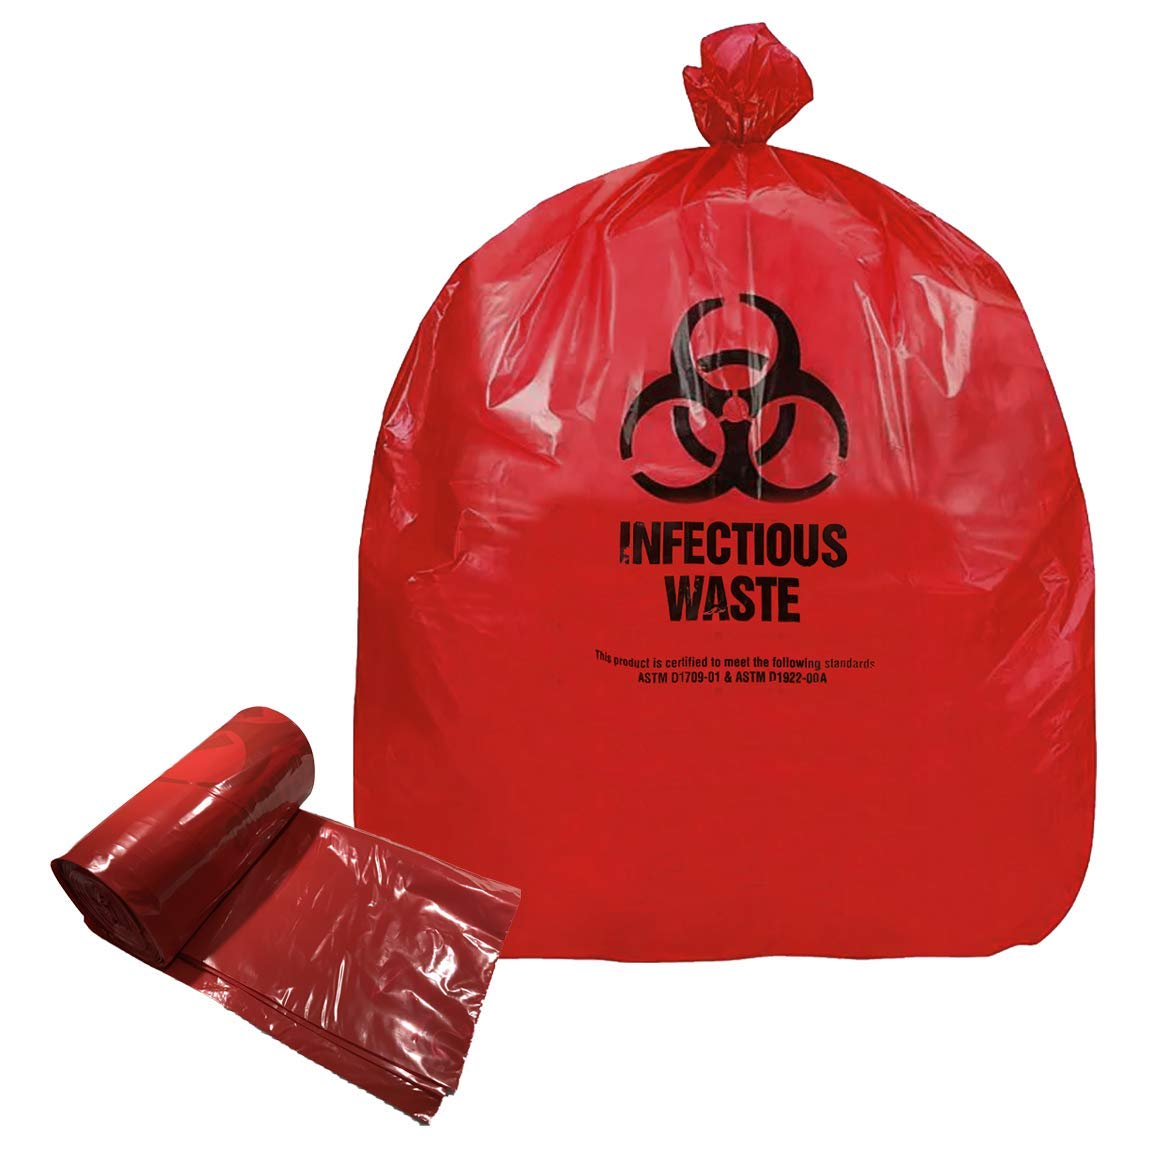 Resilia Medical - Biohazard Bags - Hazardous Waste Disposal, Meets DOT ASTM Standards for Hospital Use, Red, 25 Gallon, 30x36 Inches, 100 Bags